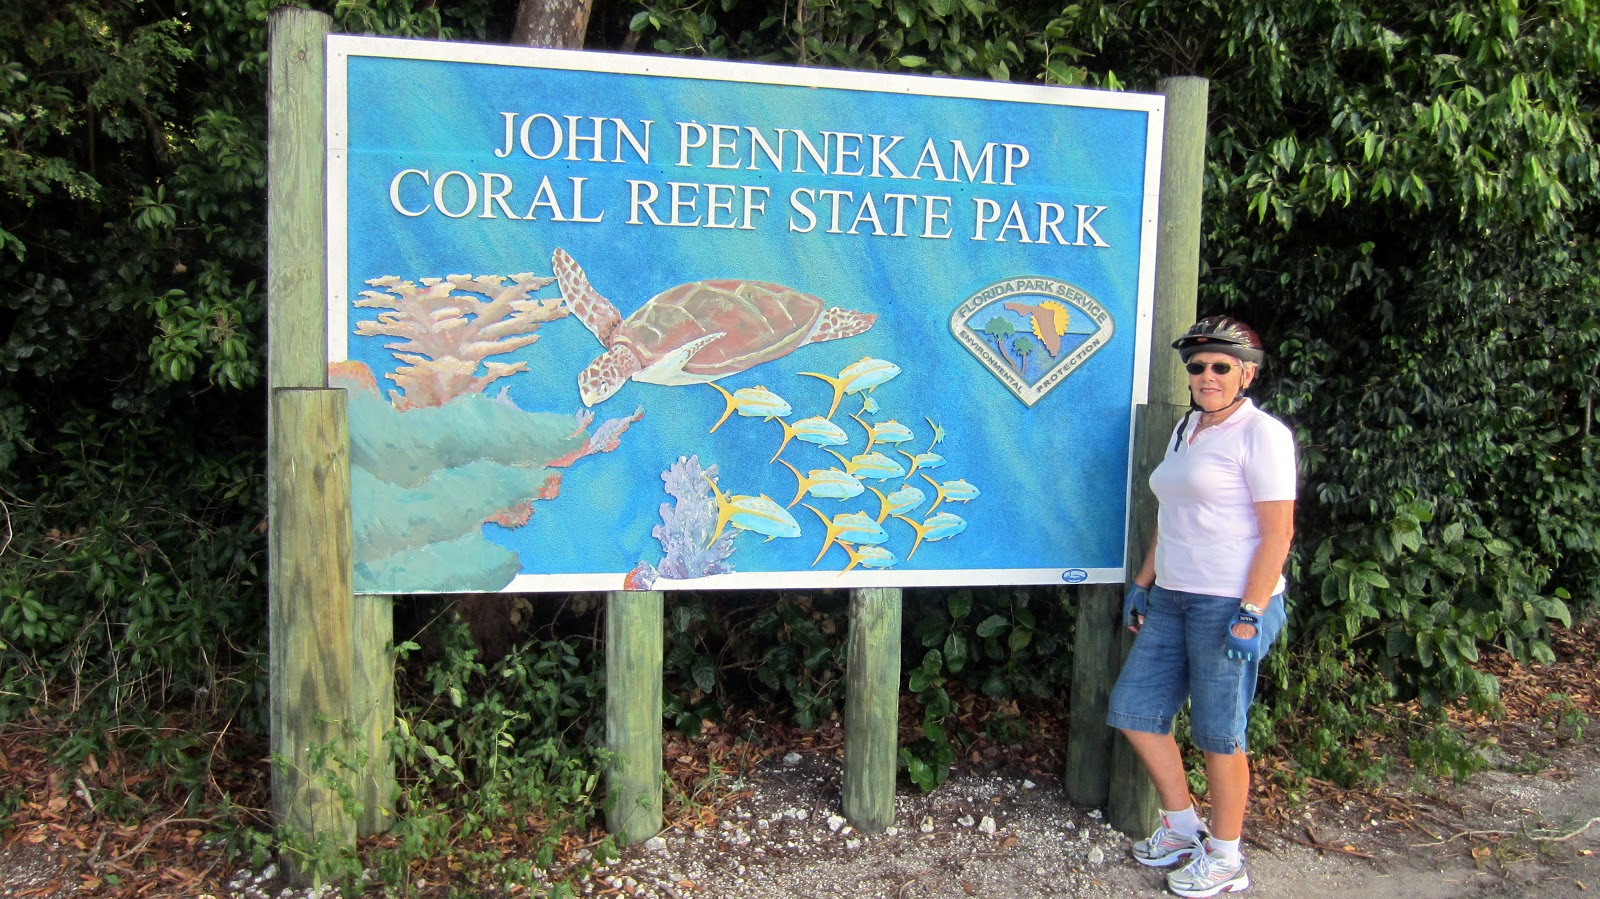 Sleeps two the four state park campgrounds florida keys for John pennekamp state park cabins